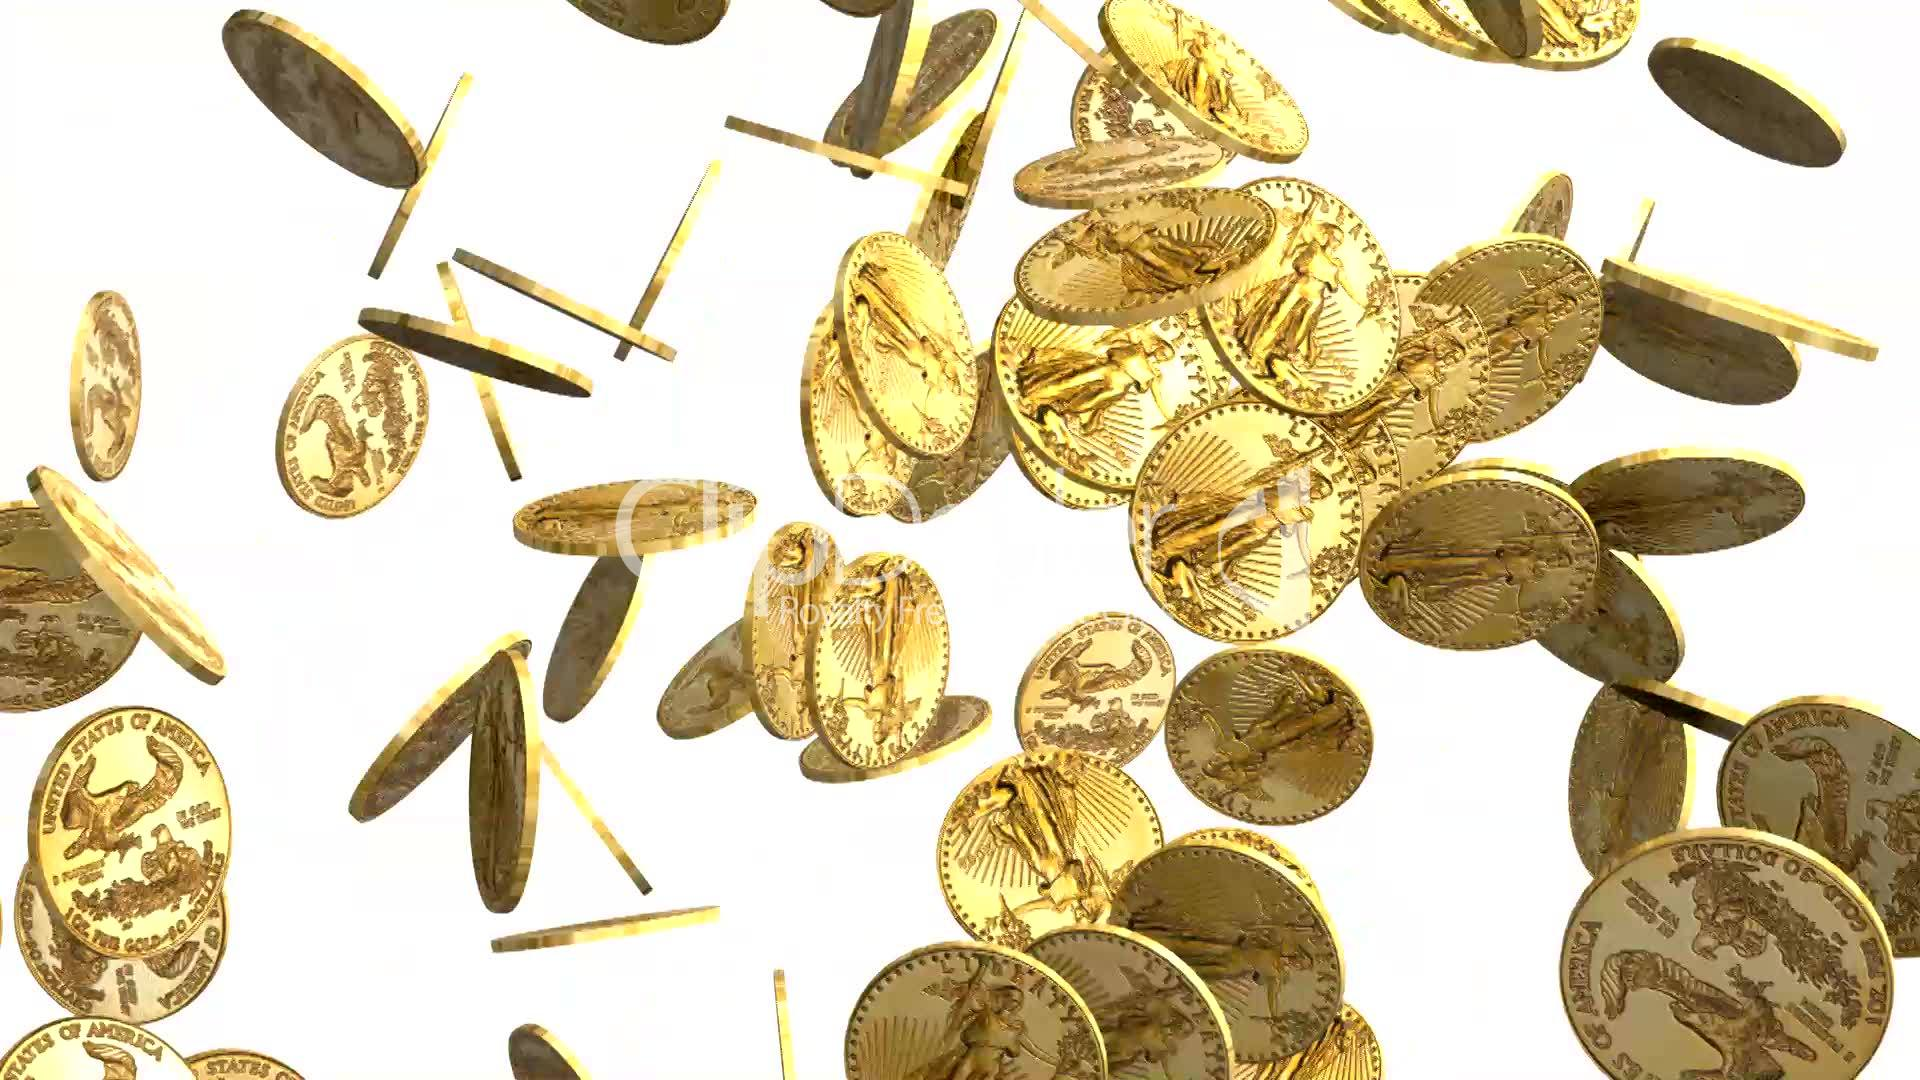 2--51219-Gold Coins Falling on White Background.jpg